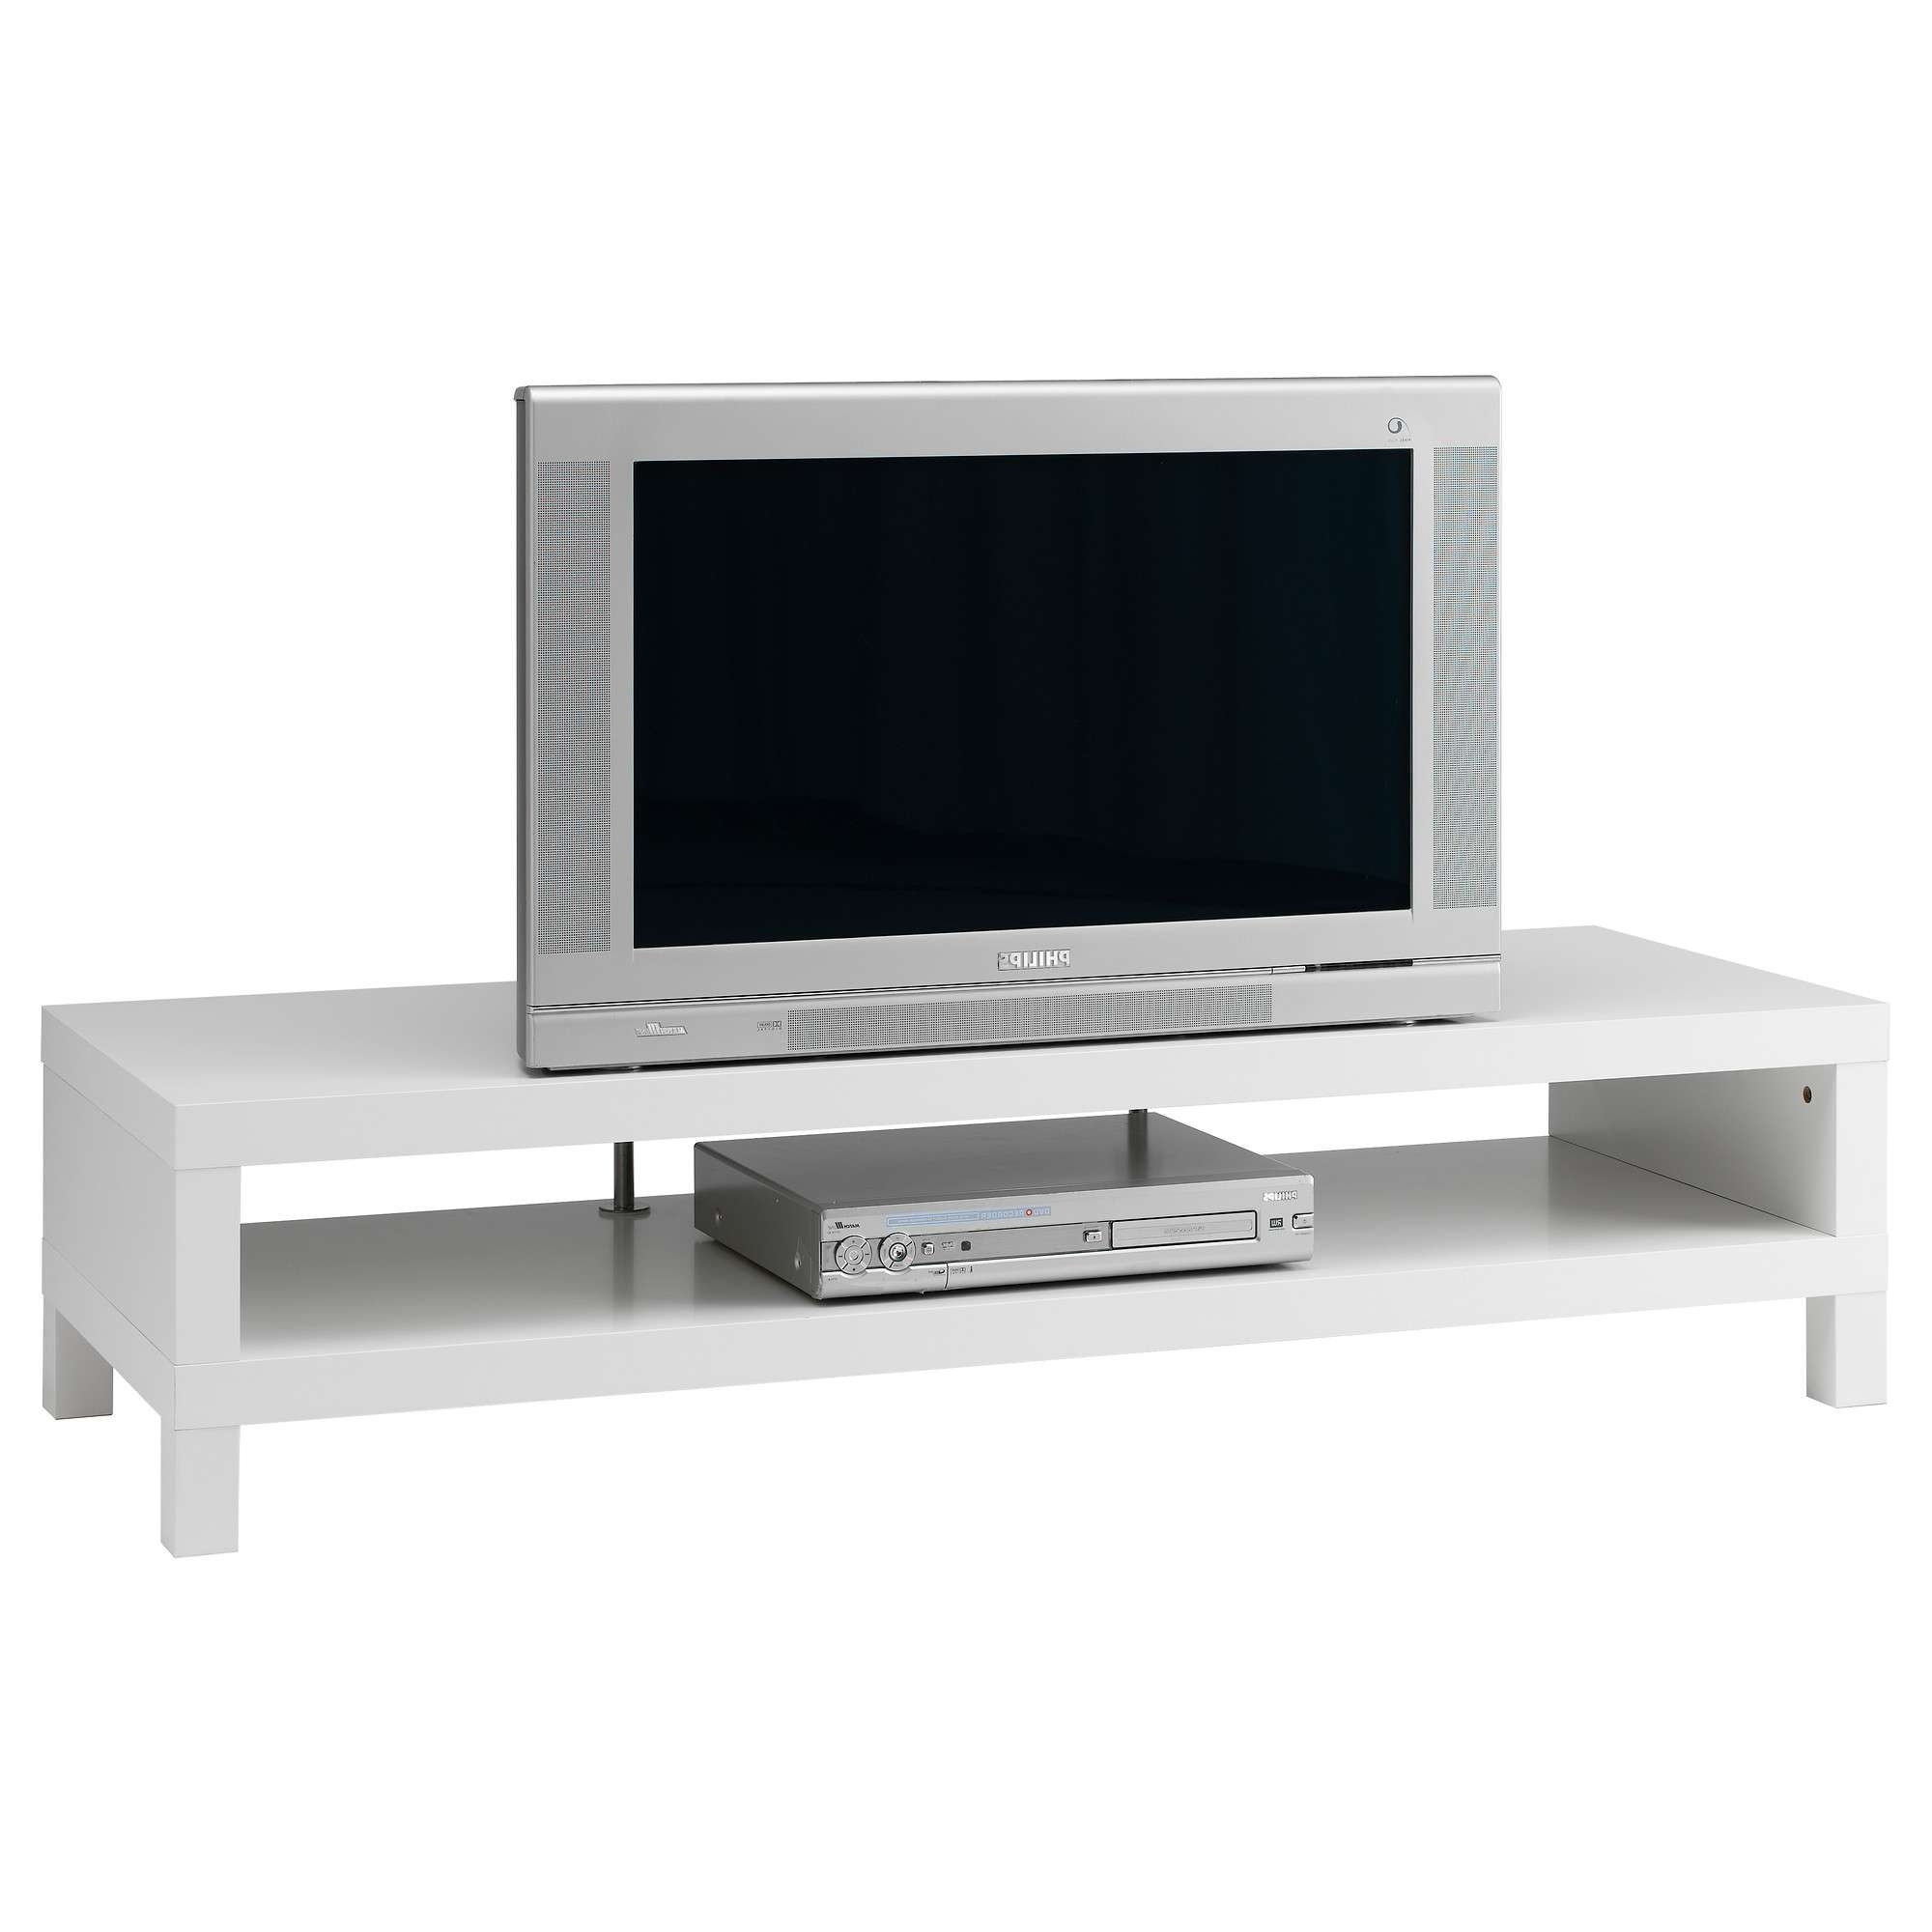 Lack Tv Bench White 149X55 Cm – Ikea Intended For Bench Tv Stands (View 10 of 15)